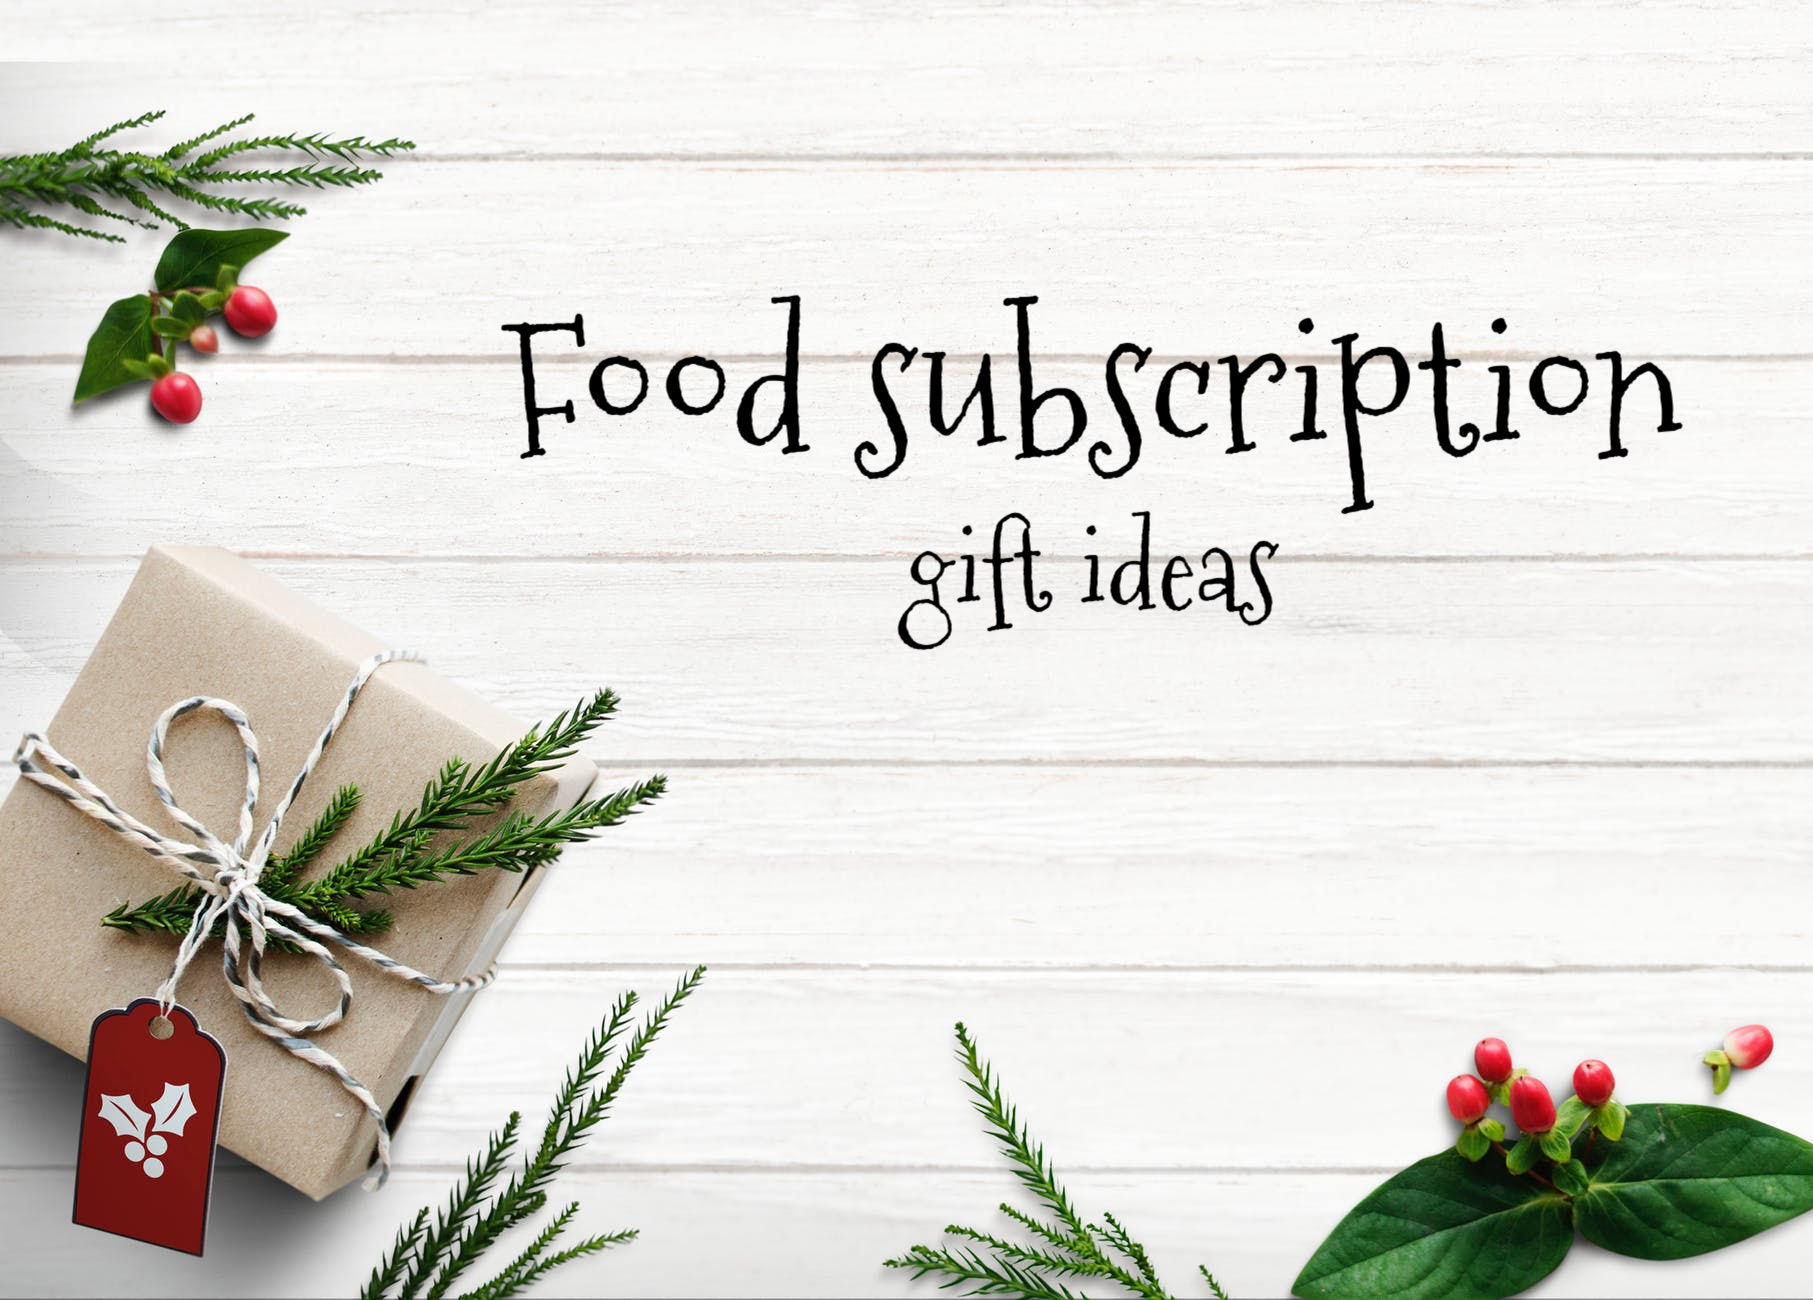 Food subscription gift ideas